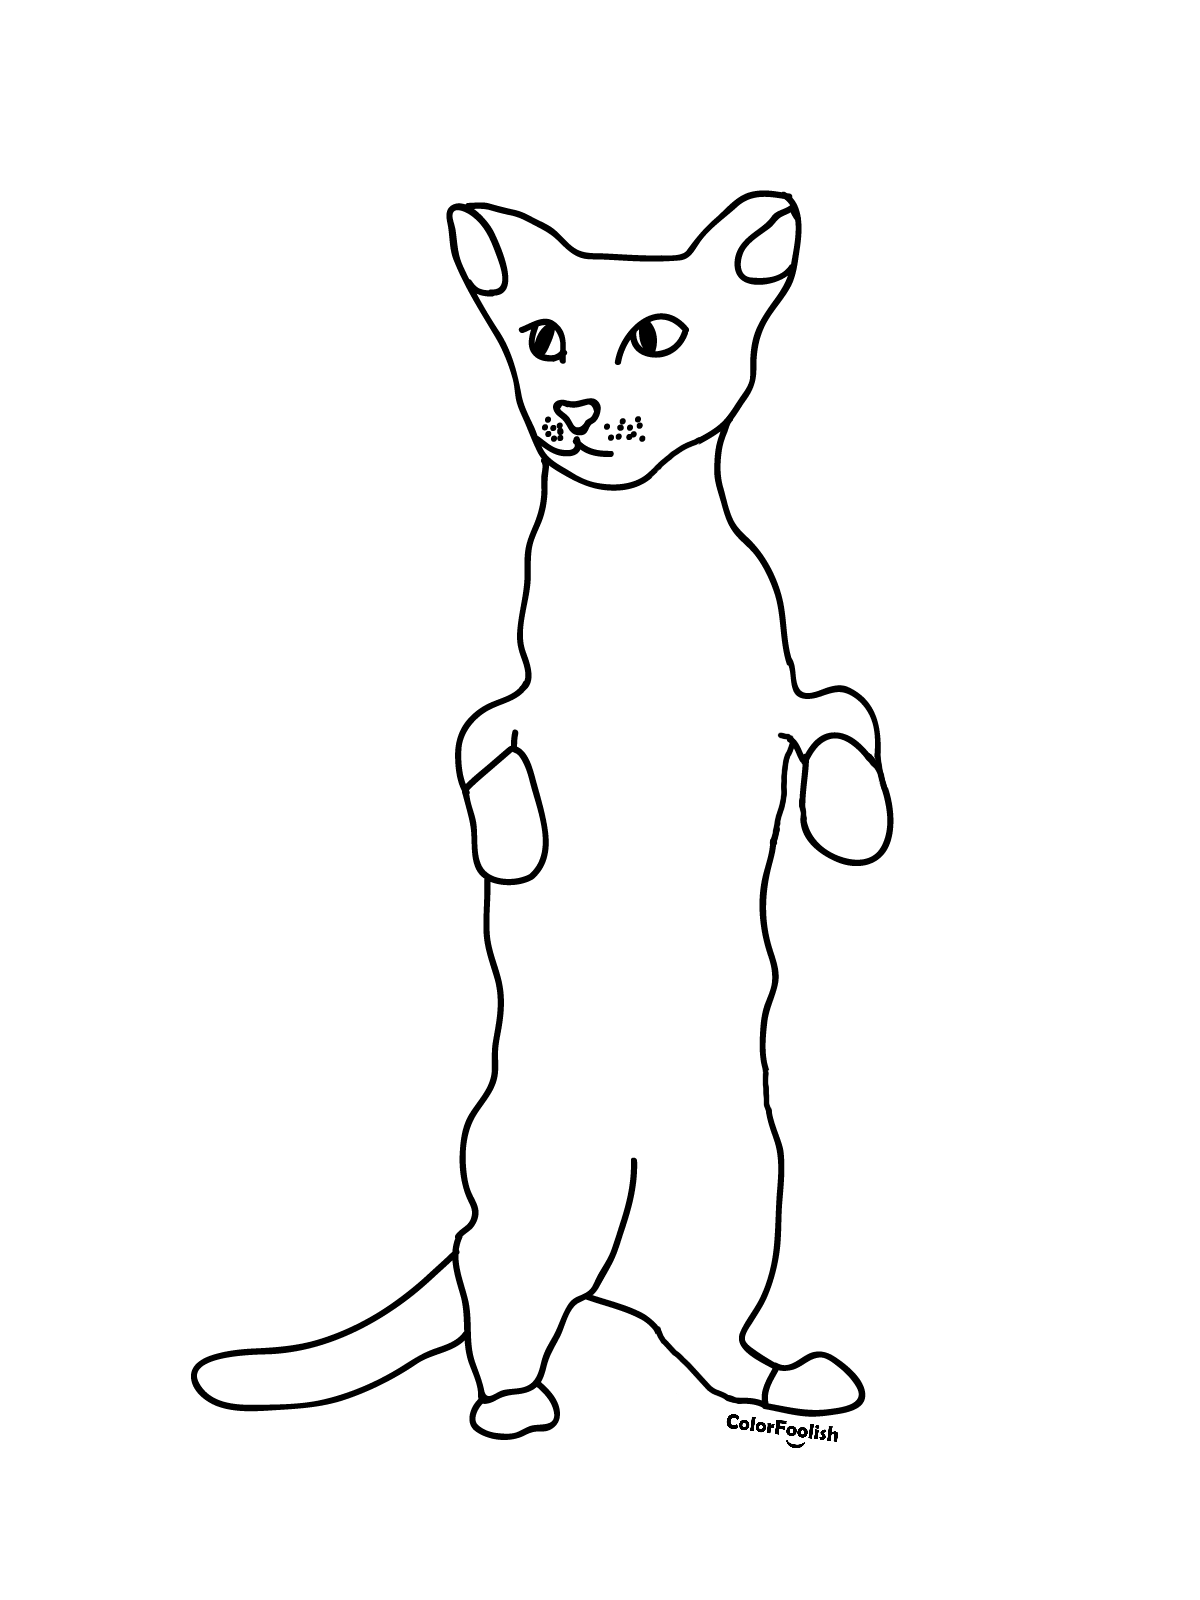 Coloring page of a curious Siamese cat